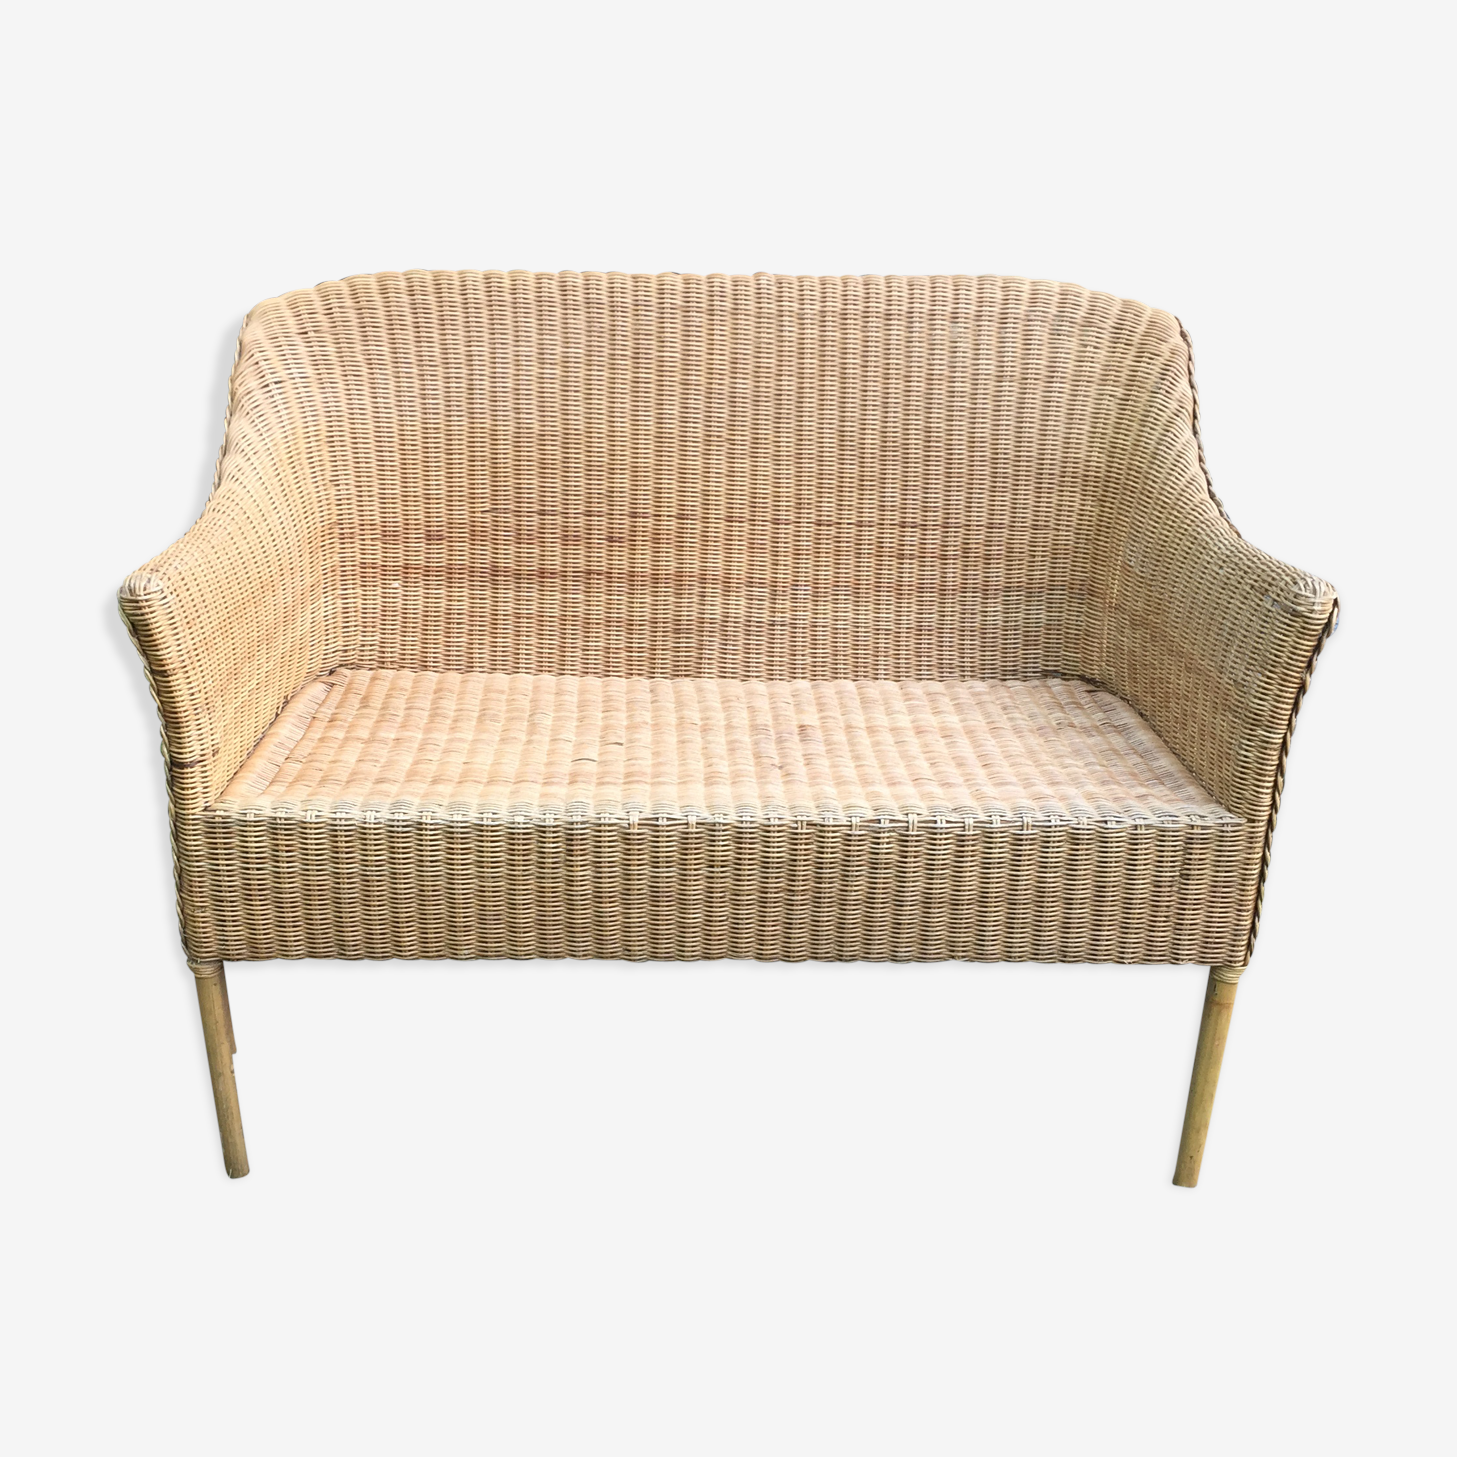 Vintage adult bamboo, rattan & wicker bench